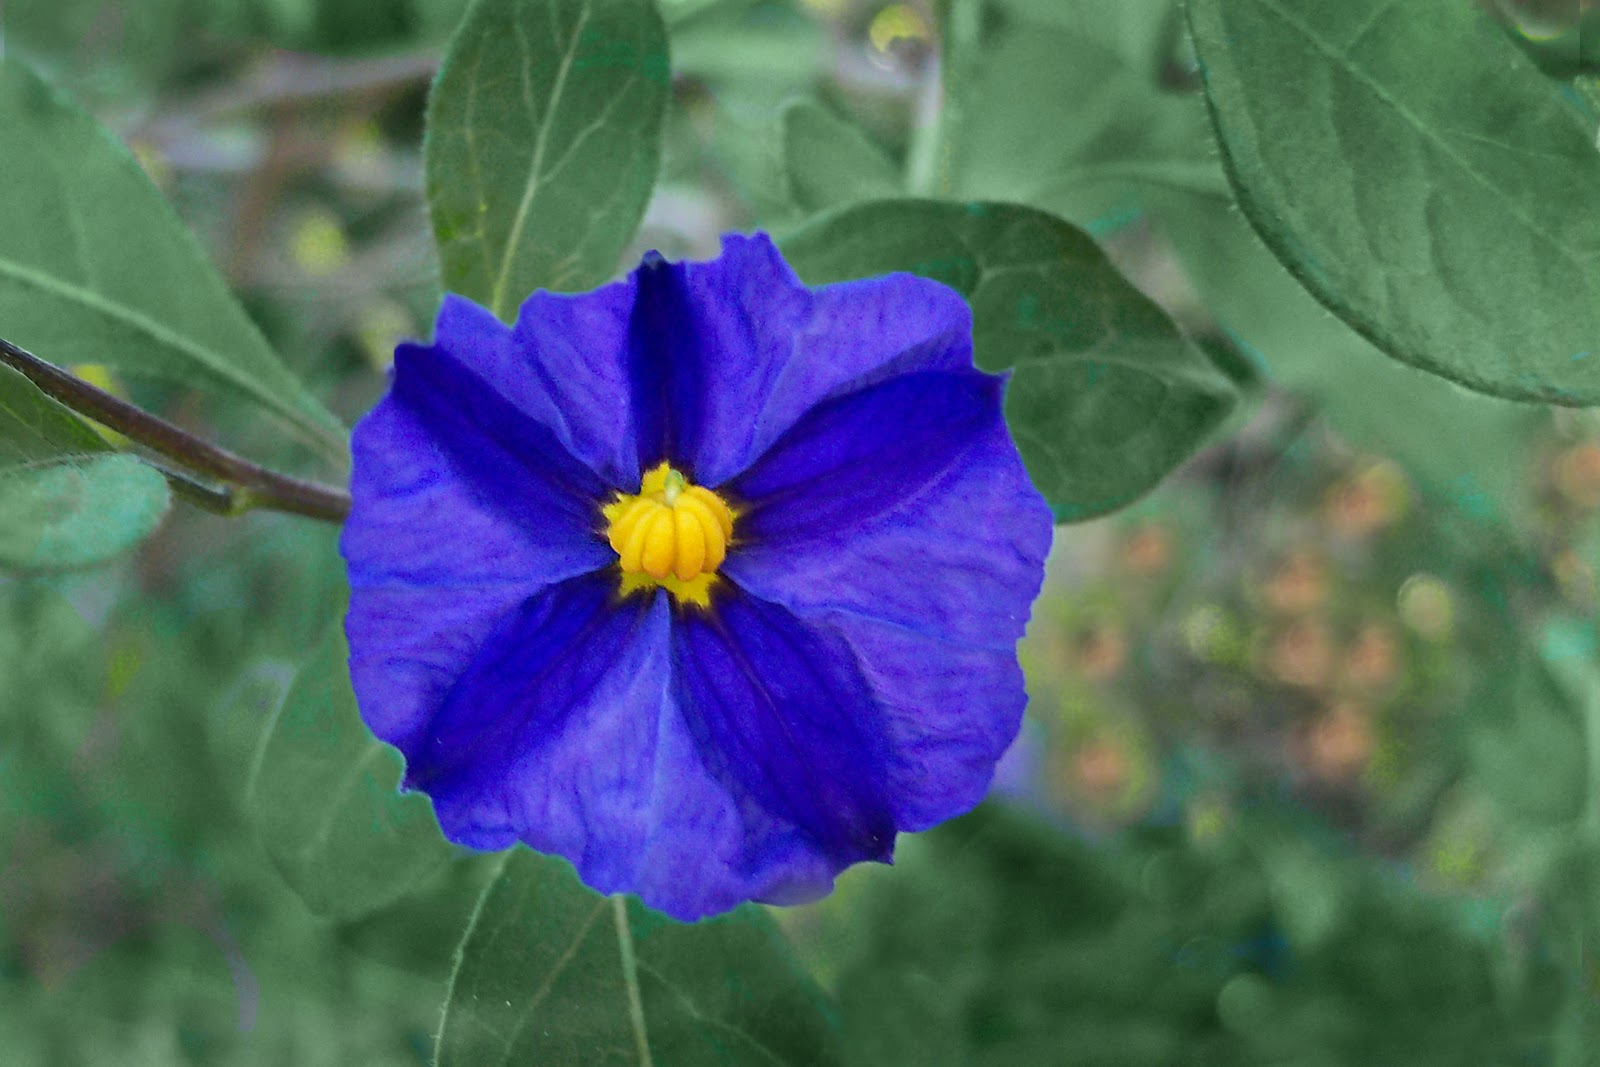 Blue Flower With Yellow Center Name